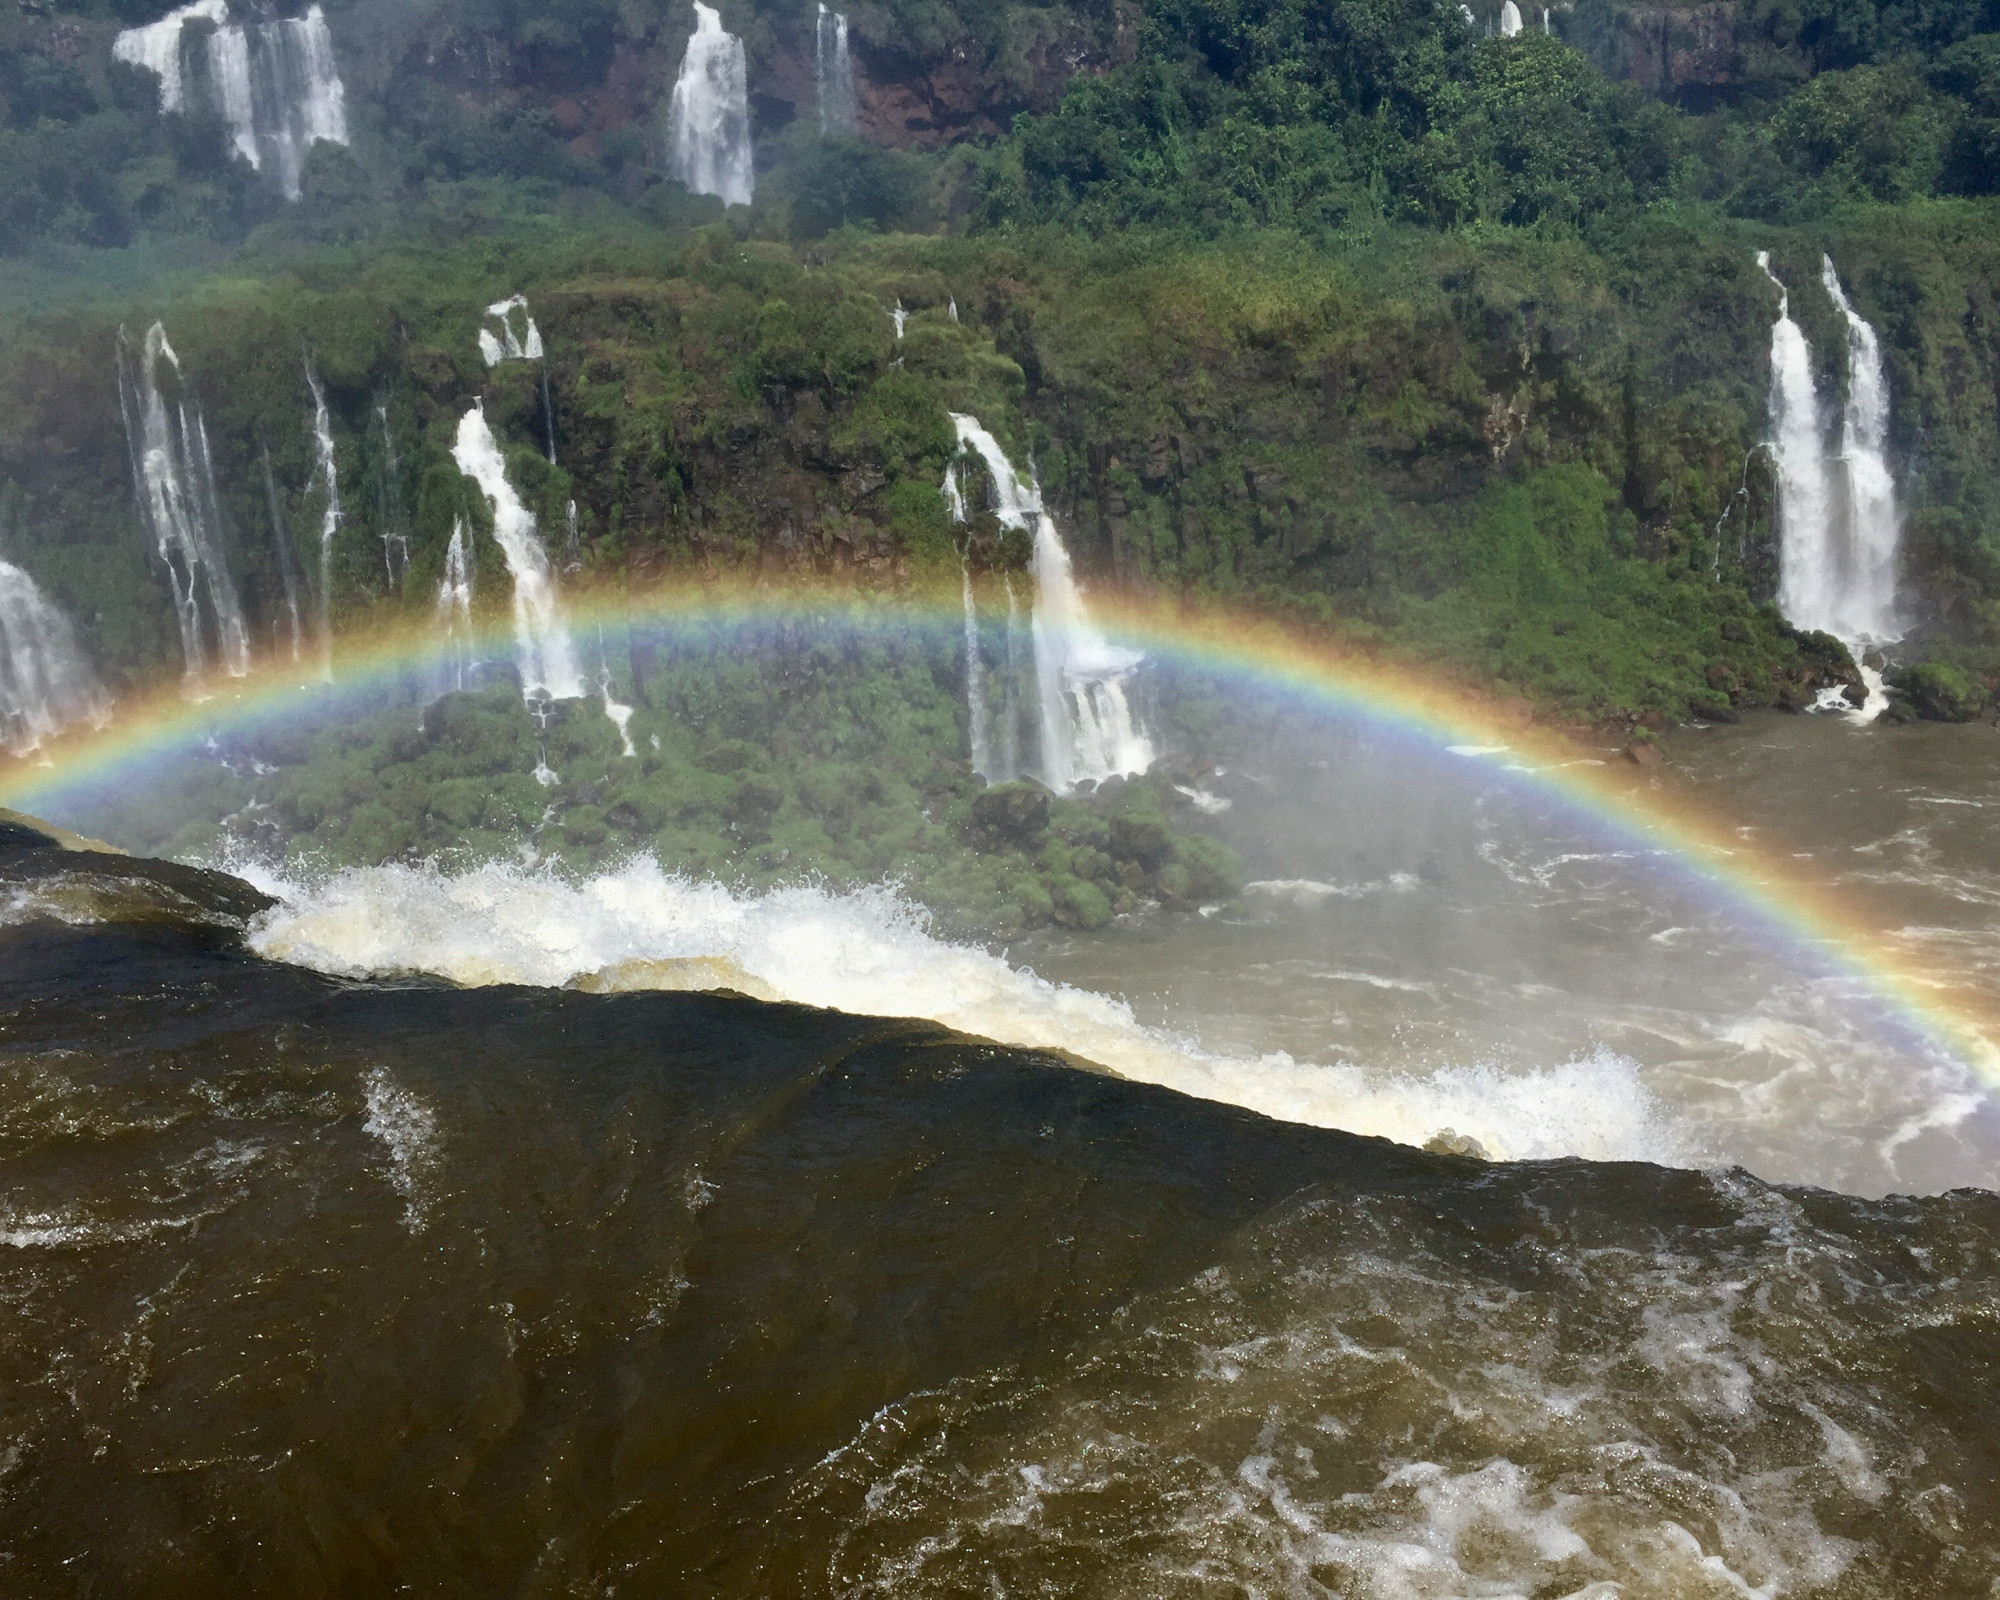 Photo 1: Iguazu sous arc en ciels